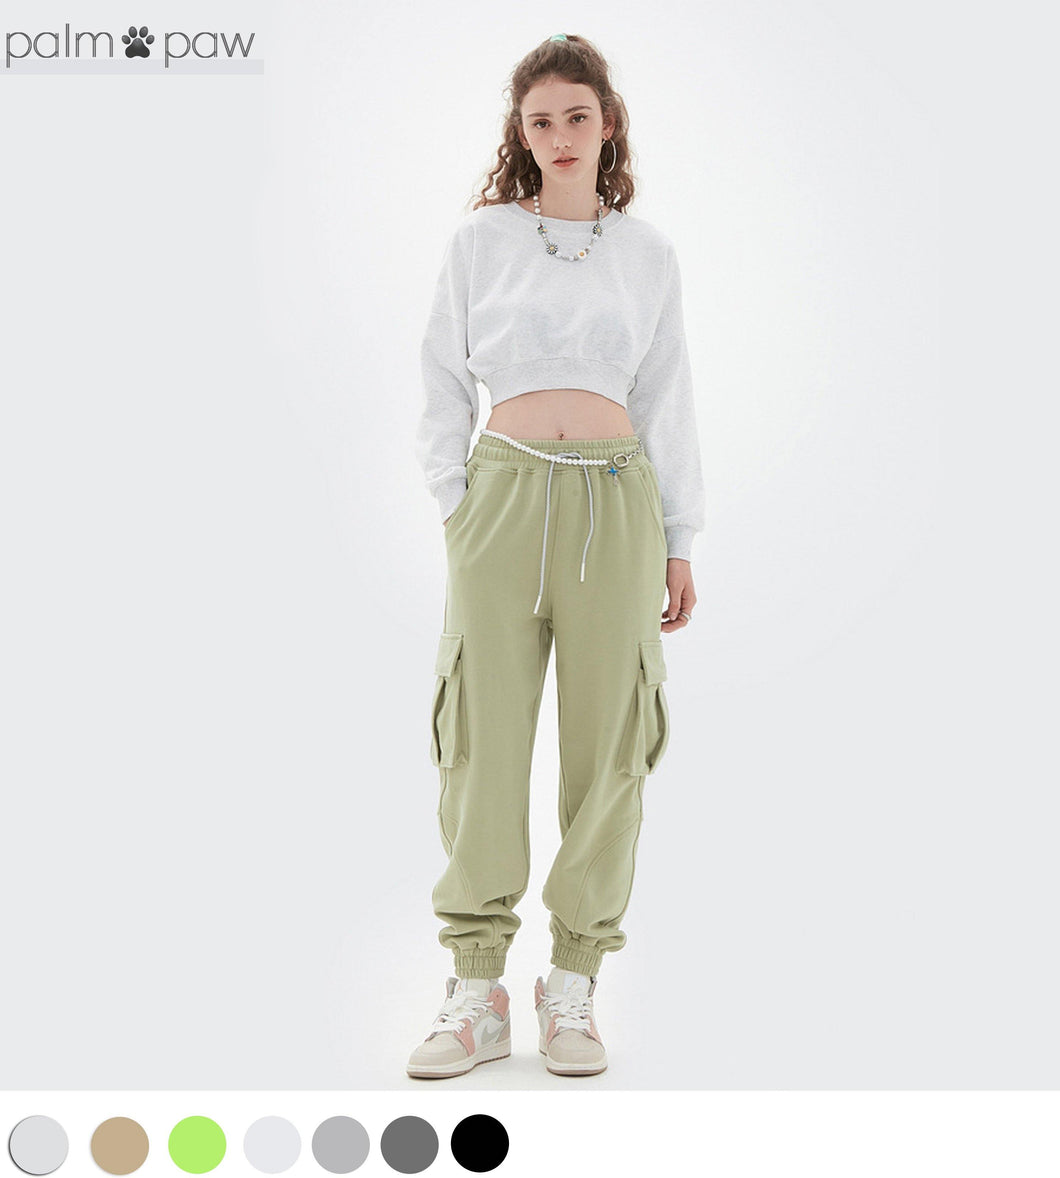 Women's Active Cropped Crew Neck Sweatshirt - Palm Paw